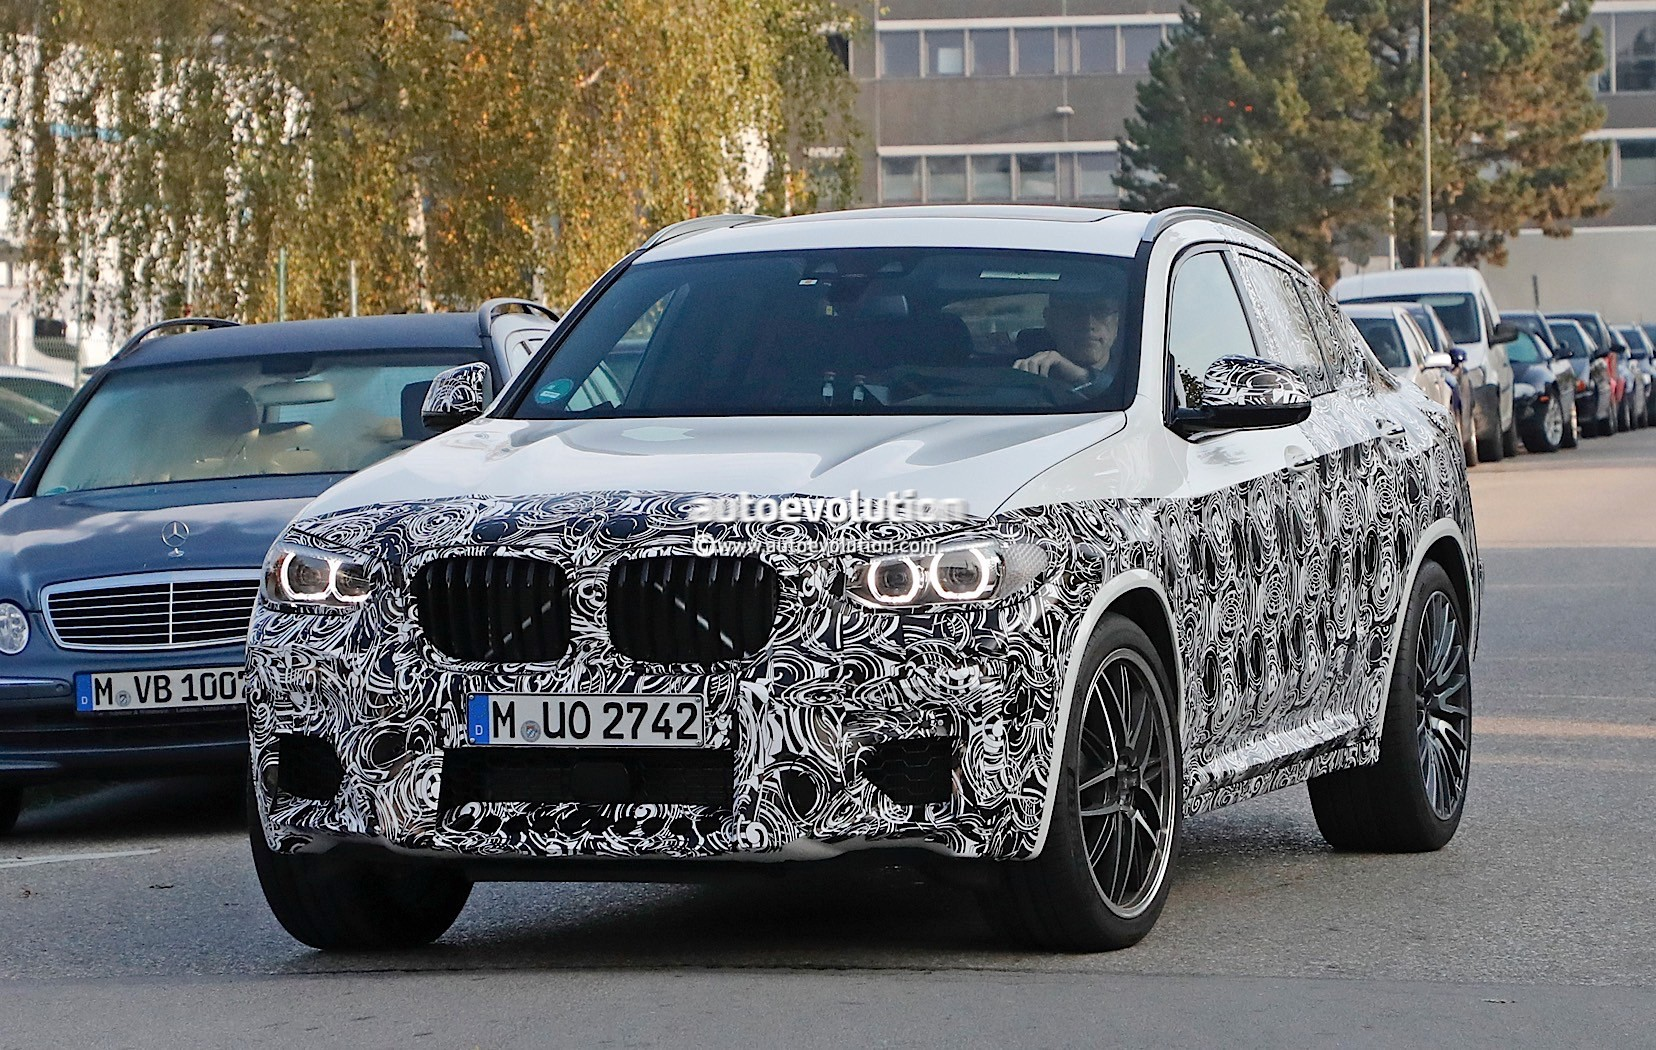 2019 Bmw X4 M40i Spied Near The Nurburgring To Offer More Rear